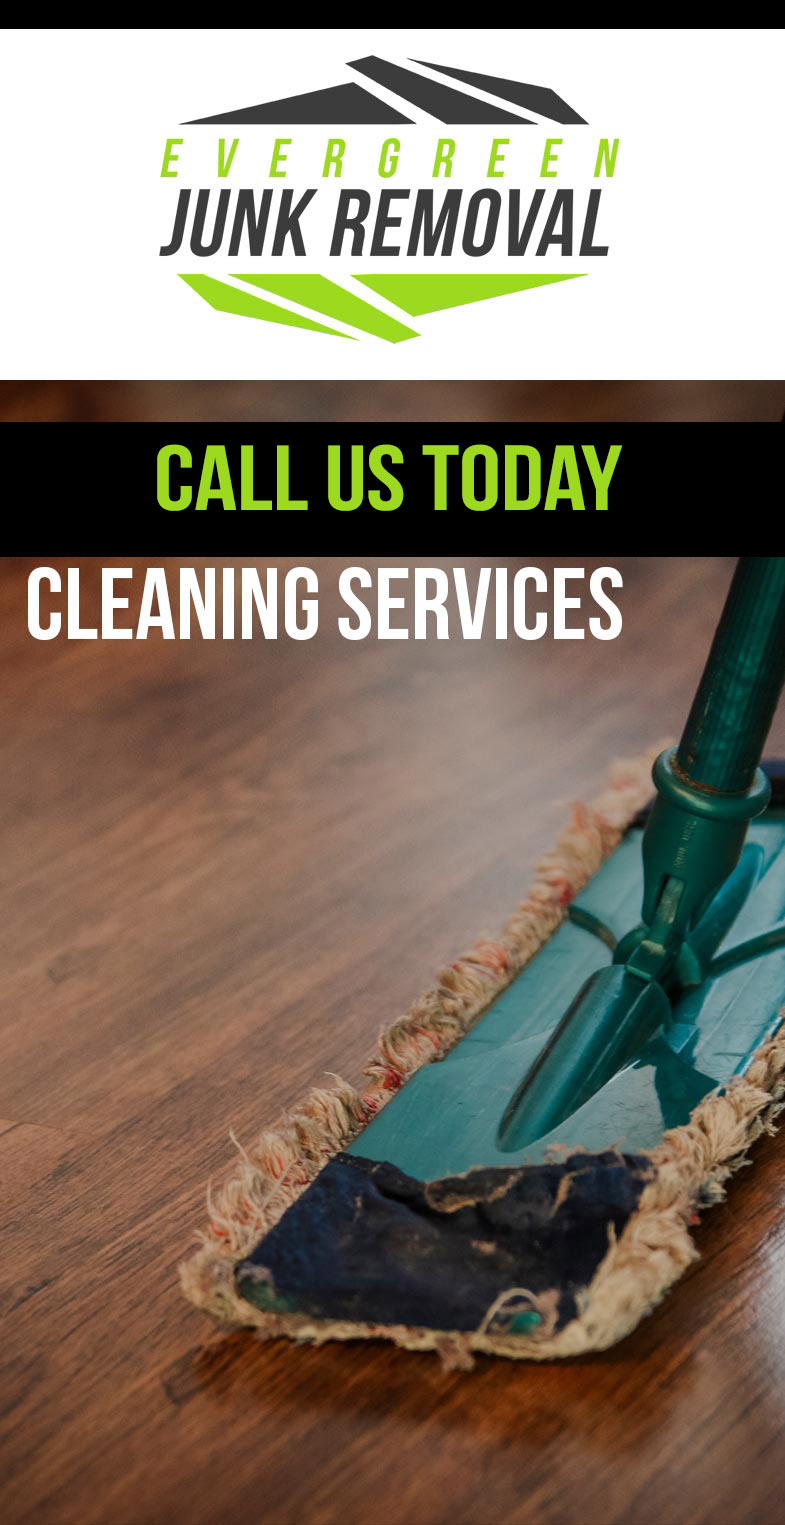 Jupiter Office Cleaning Services